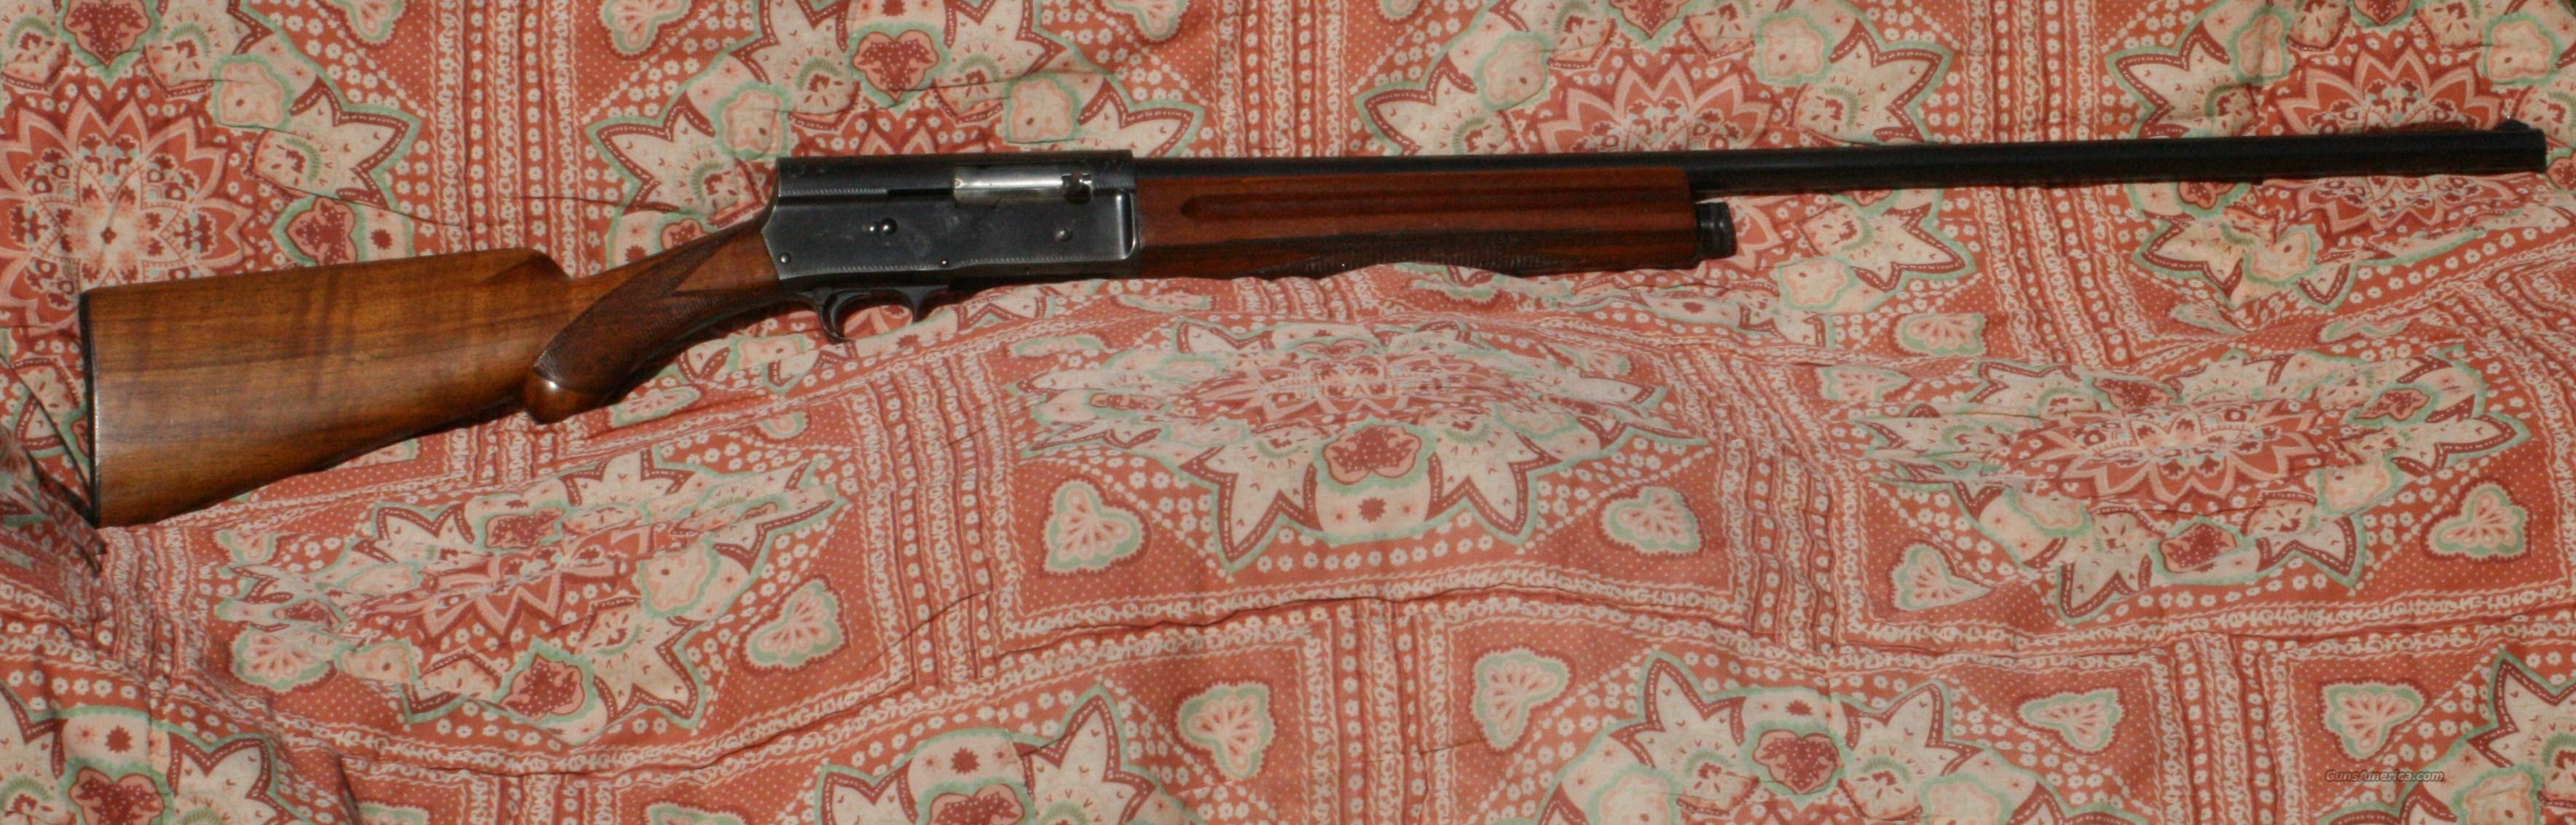 Browning Vintage Auto  Guns > Shotguns > Browning Shotguns > Autoloaders > Hunting